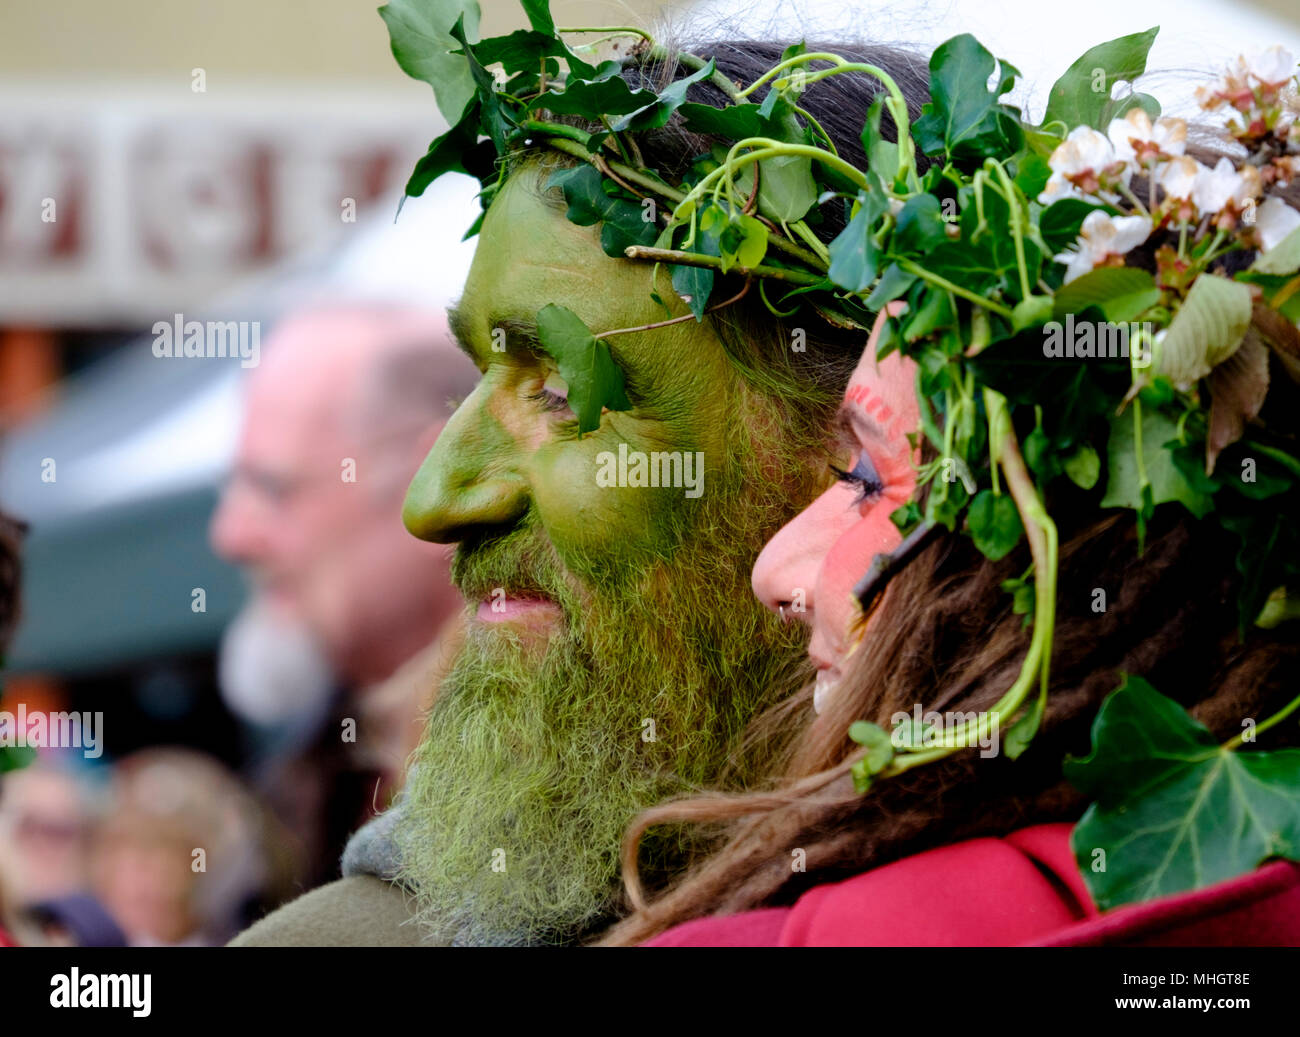 Glastonbury,UK. 1st May 2018.  Pagans and other celebrants of the Beltane festival gather in the streets of Glastonbury on the first day of May 2018.  The festival has pre christian roots and welcomes in the summer. ©JMF News / Alamy Live News - Stock Image